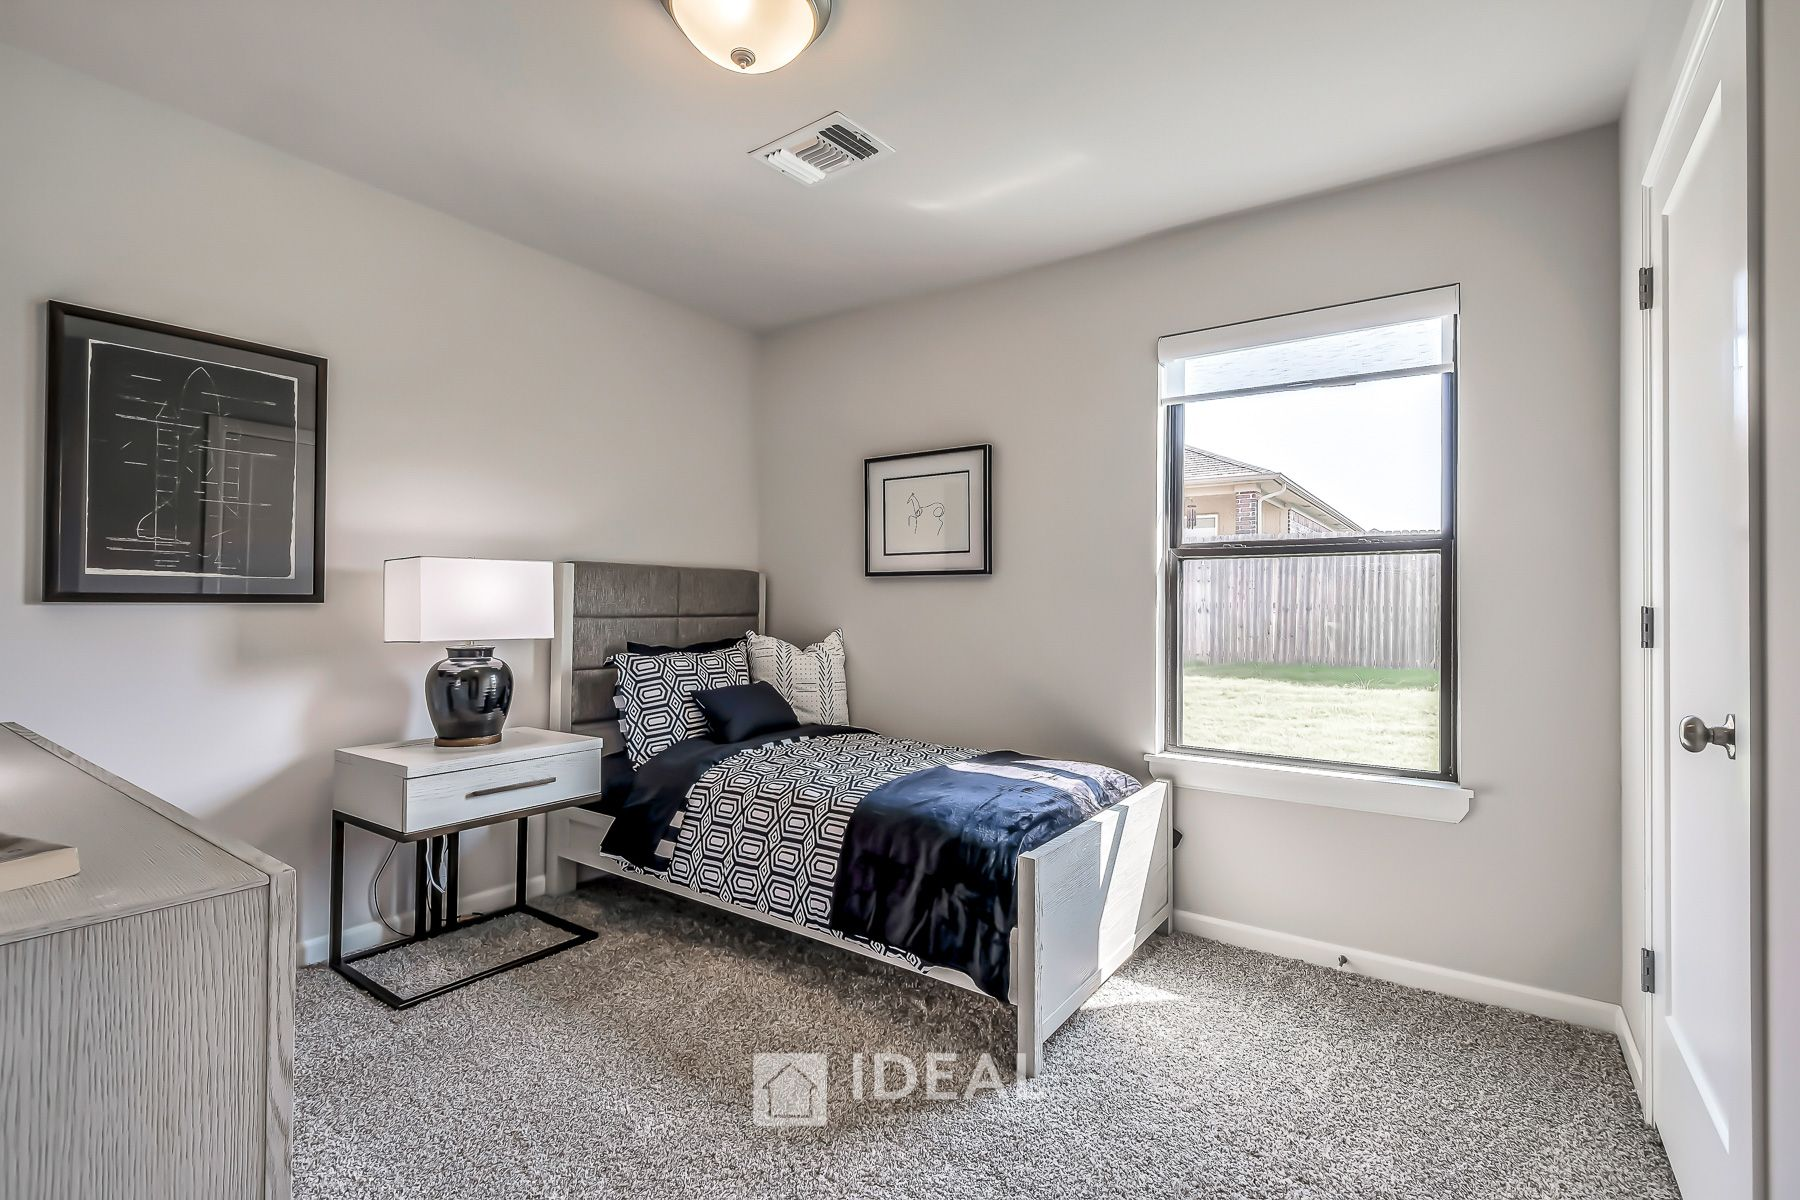 Bedroom featured in the Fitzgerald By Ideal Homes in Oklahoma City, OK